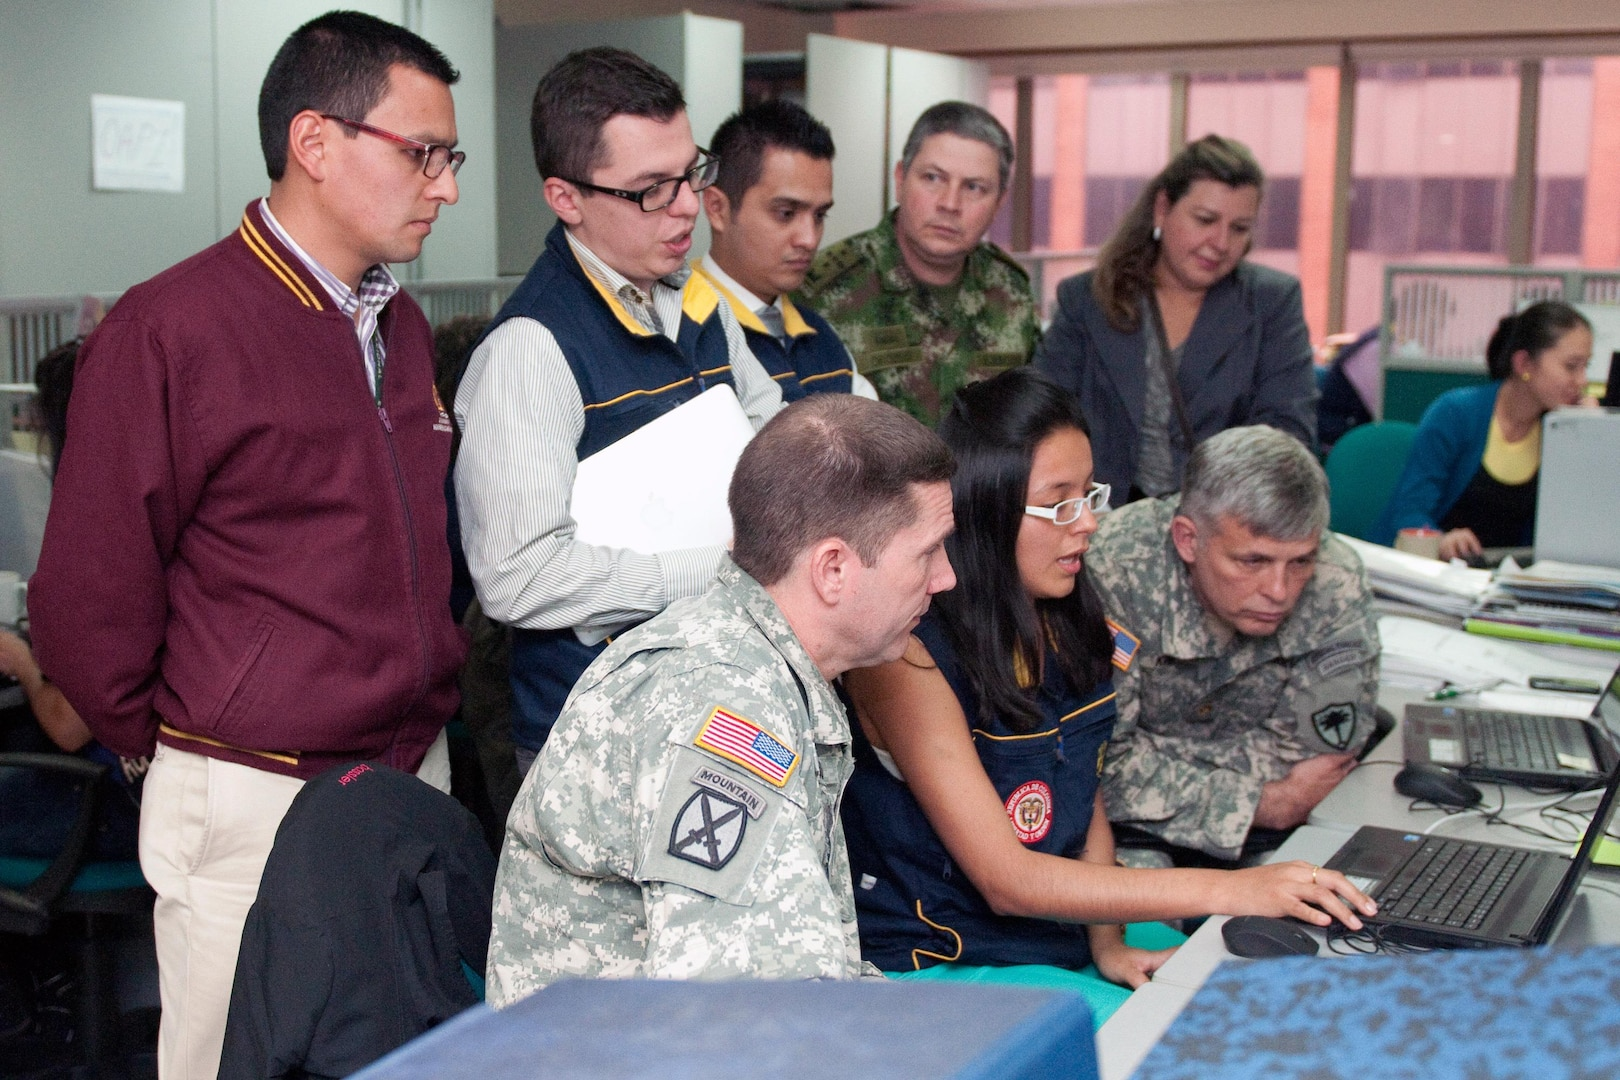 Members of the South Carolina National Guard visit the Colombia emergency services (UNGRD) office to see their programs in action. UNGRD staff shows SCNG staff how their system works with Google-based programs Sept. 13, 2013.